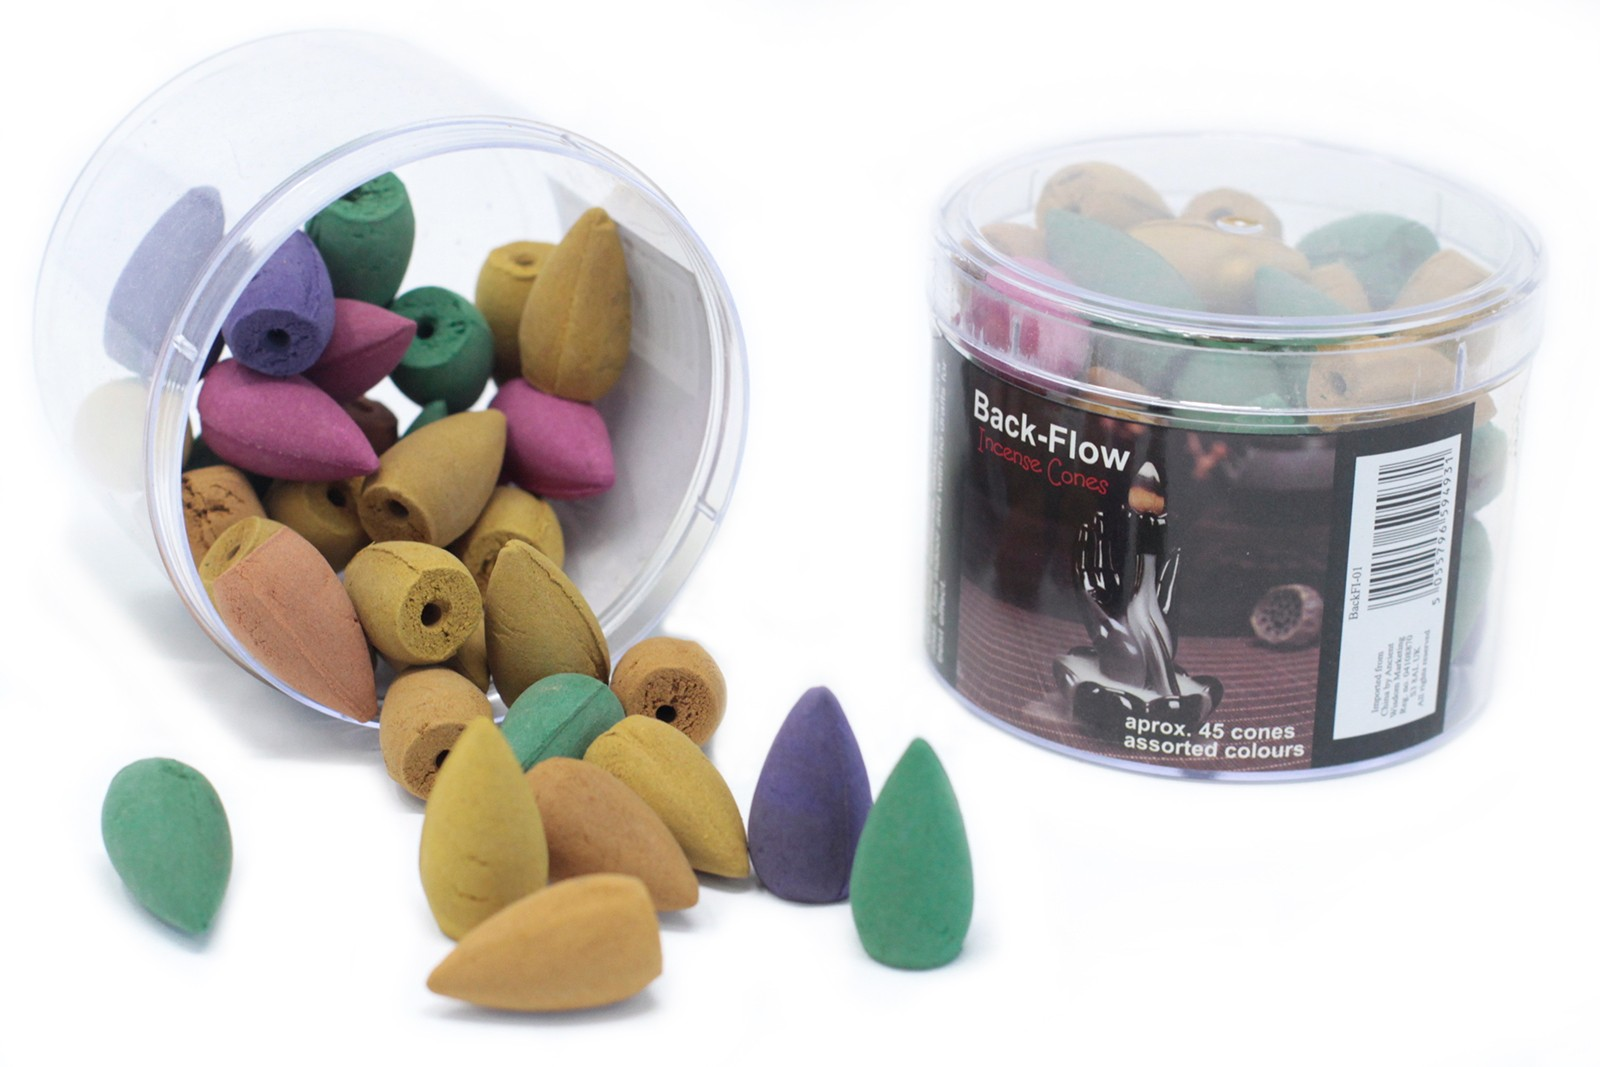 Tub of Assorted Back Flow Incense Cones aprox 45